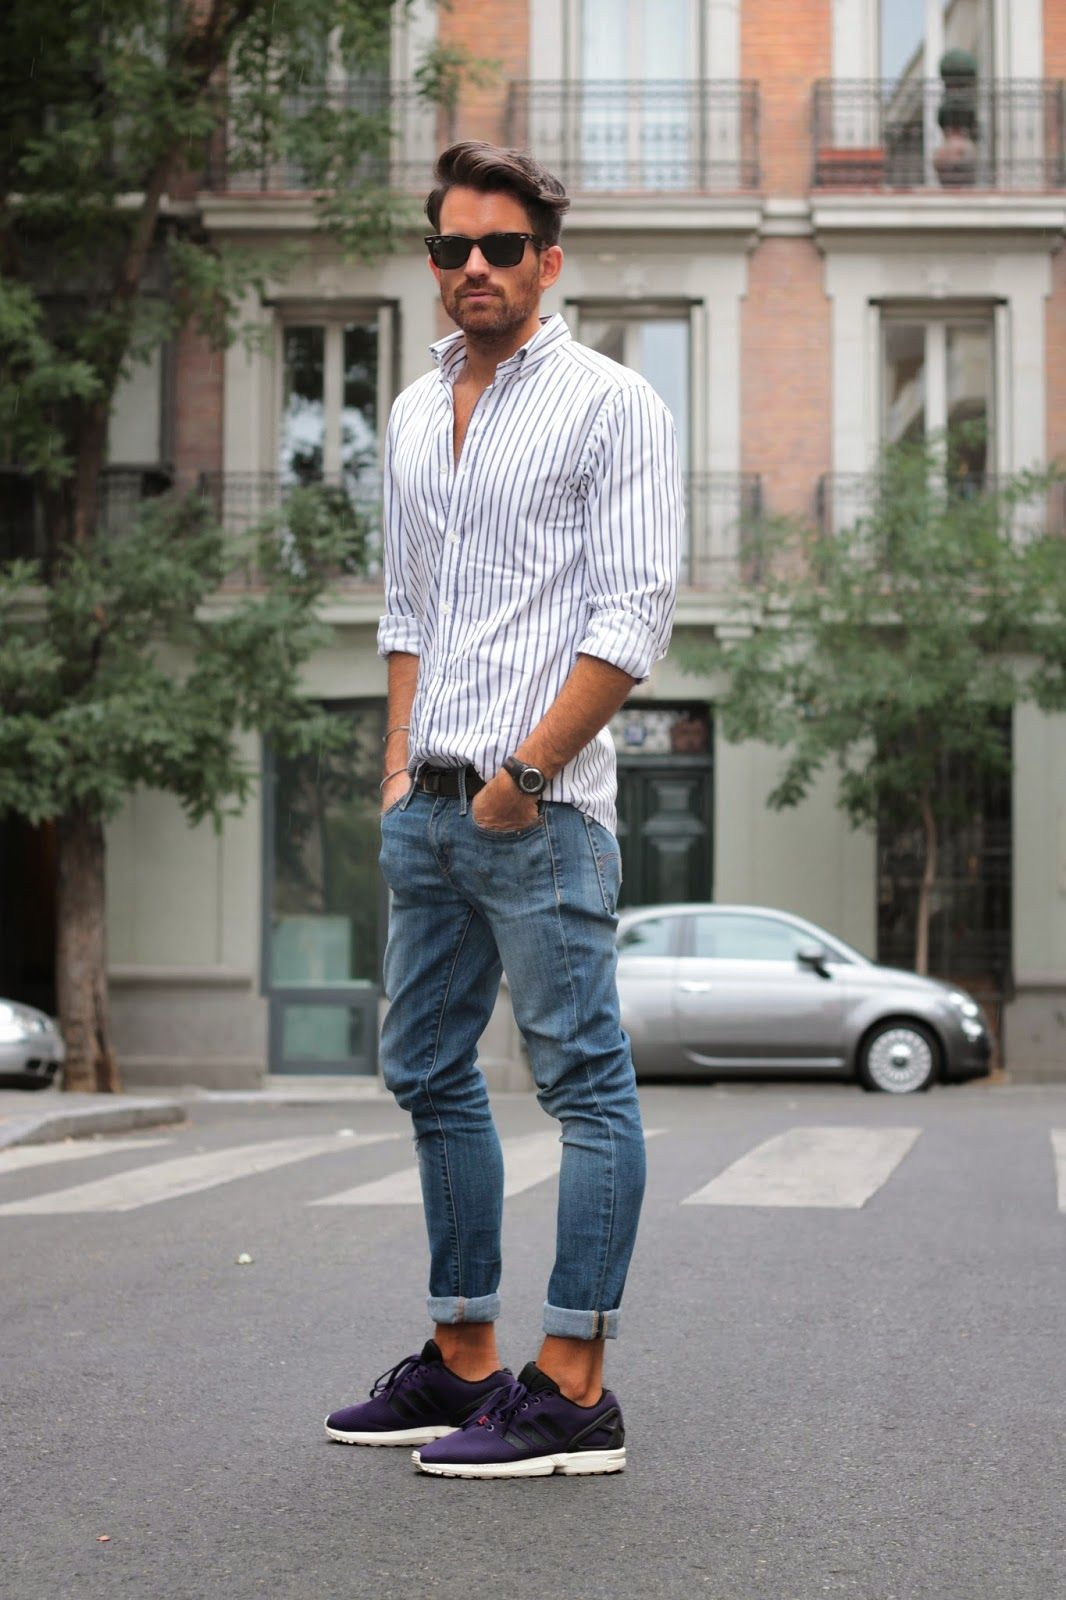 fashion #street #minus #tight #jeans #how #the #areStreet